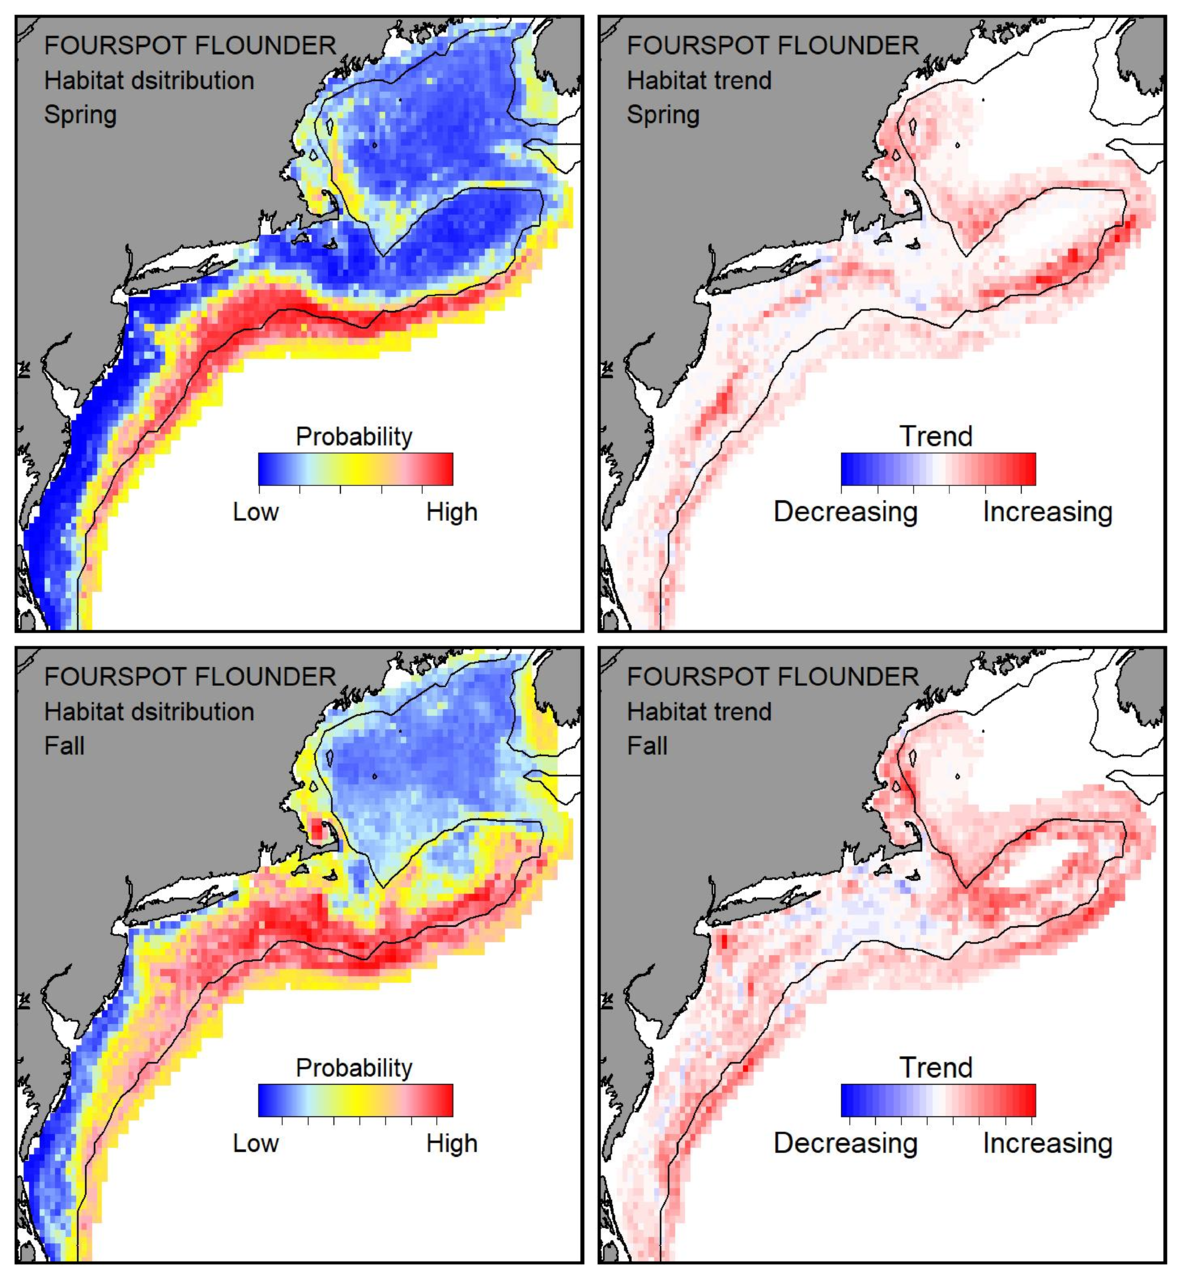 Probable habitat distribution for fourspot flounder showing the highest concentration and increasing trend in the Gulf of Maine during the spring. Bottom row: Probable habitat distribution for fourspot flounder showing the highest concentration and increasing trend in the Gulf of Maine during the fall.